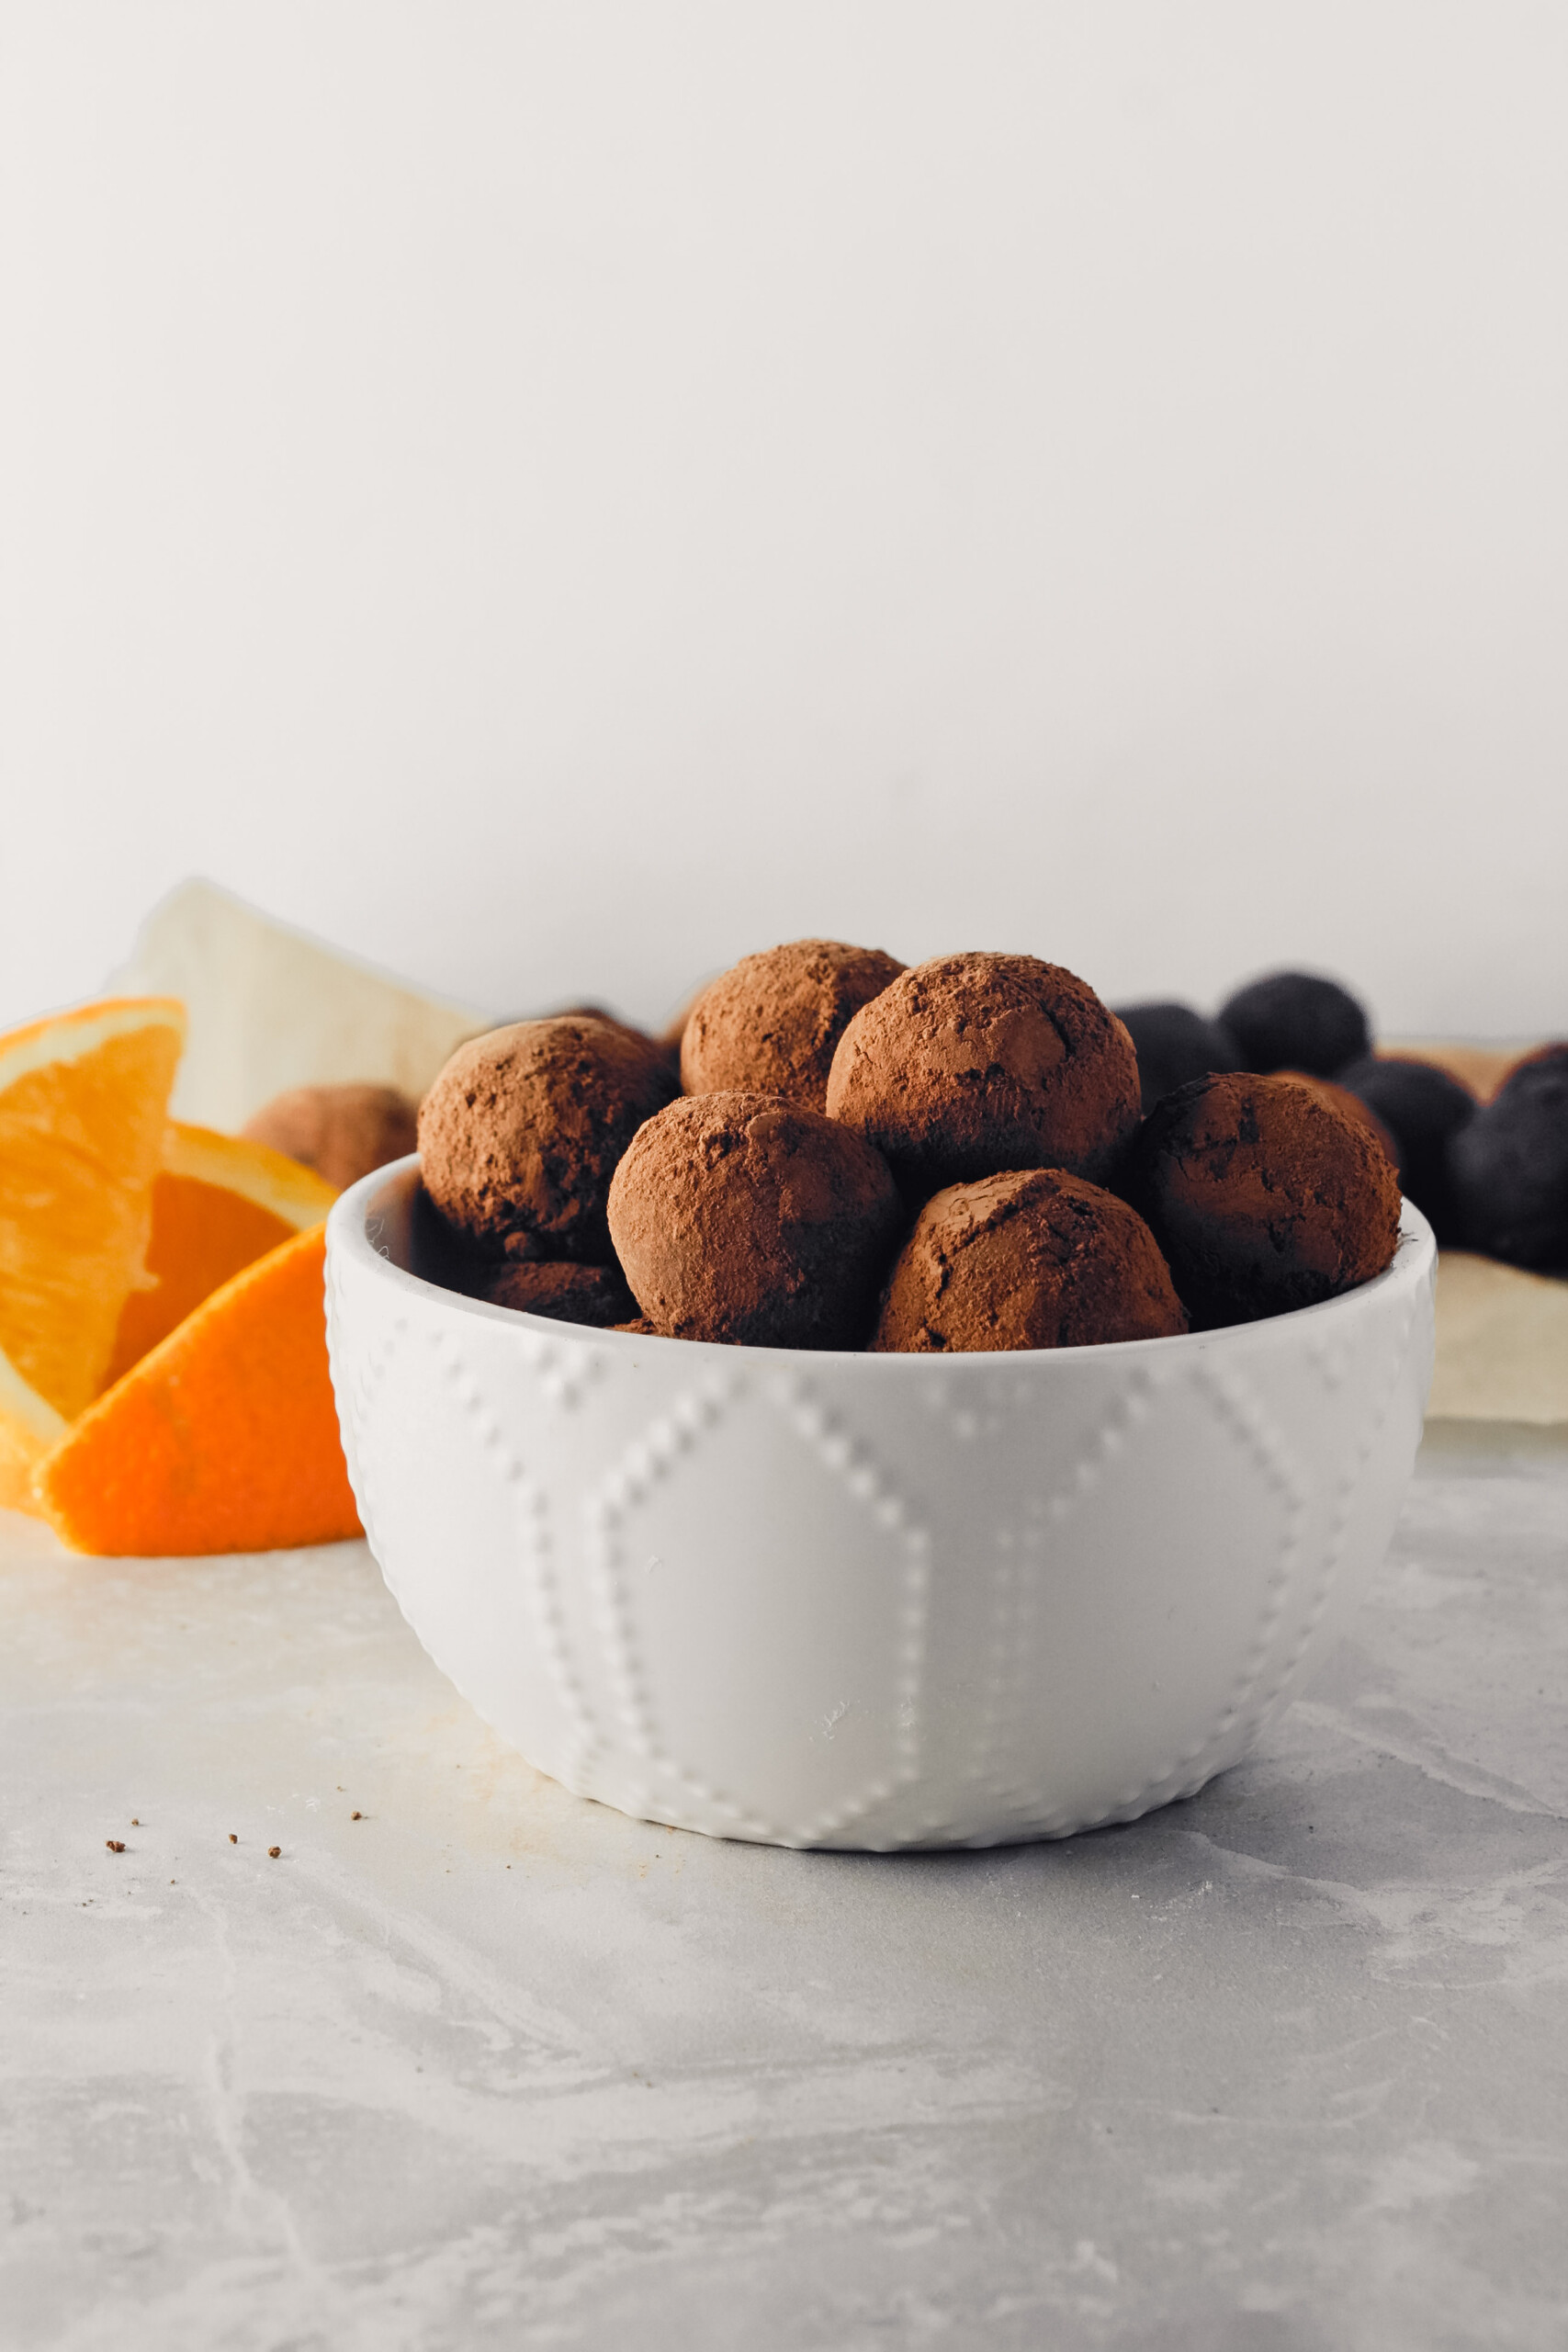 Photograph of vegan dark chocolate truffles stacked in a white bowl, one with a bite taken out of it.